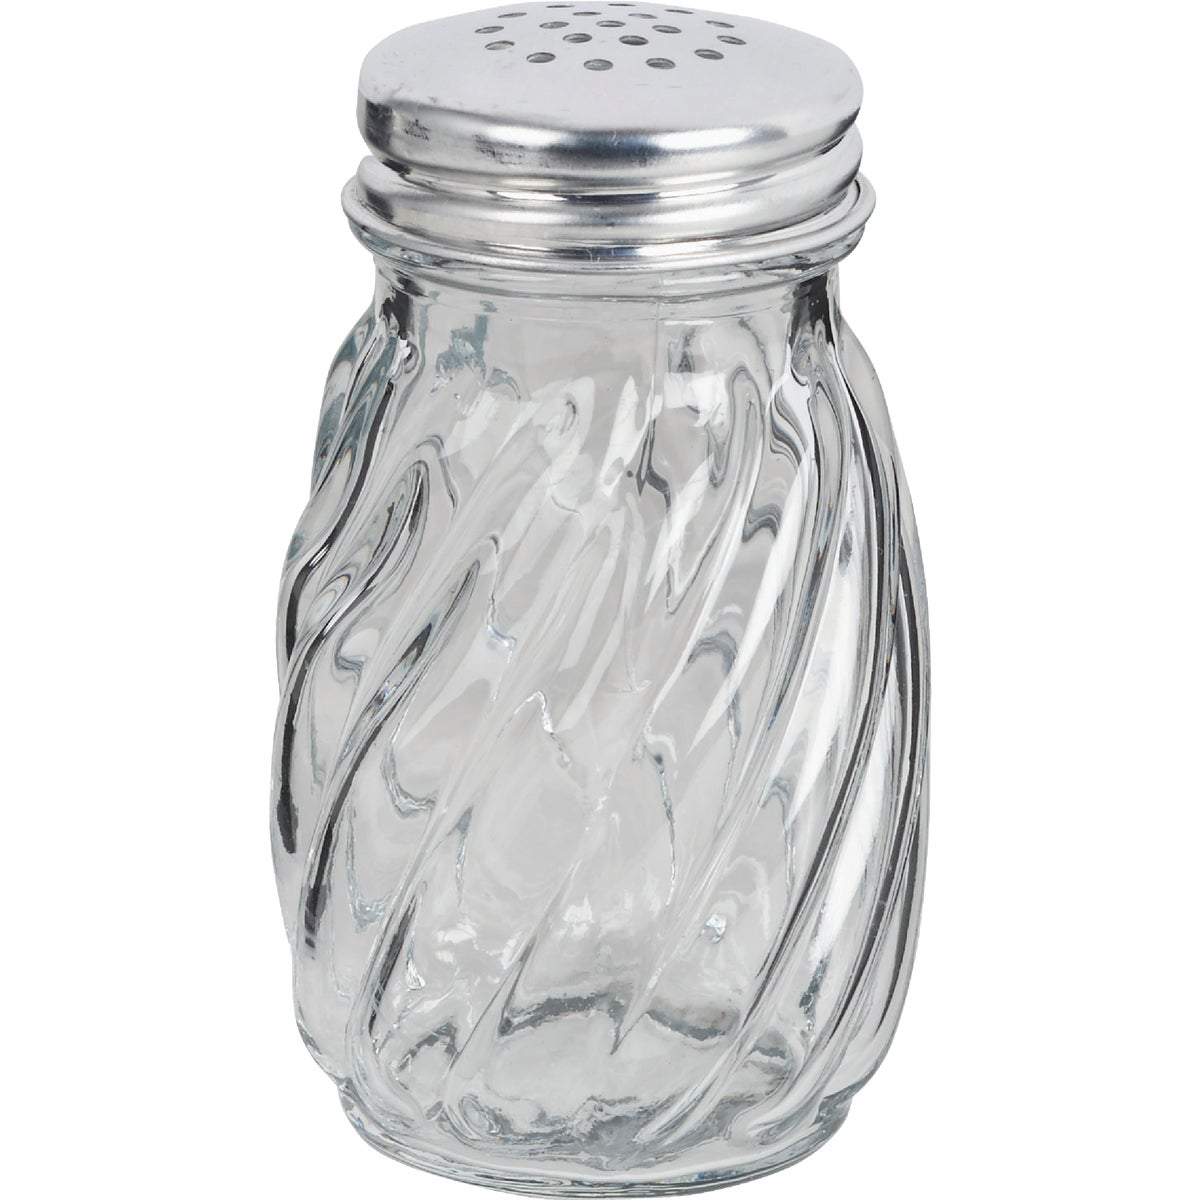 SALT/PEPPER SHAKER